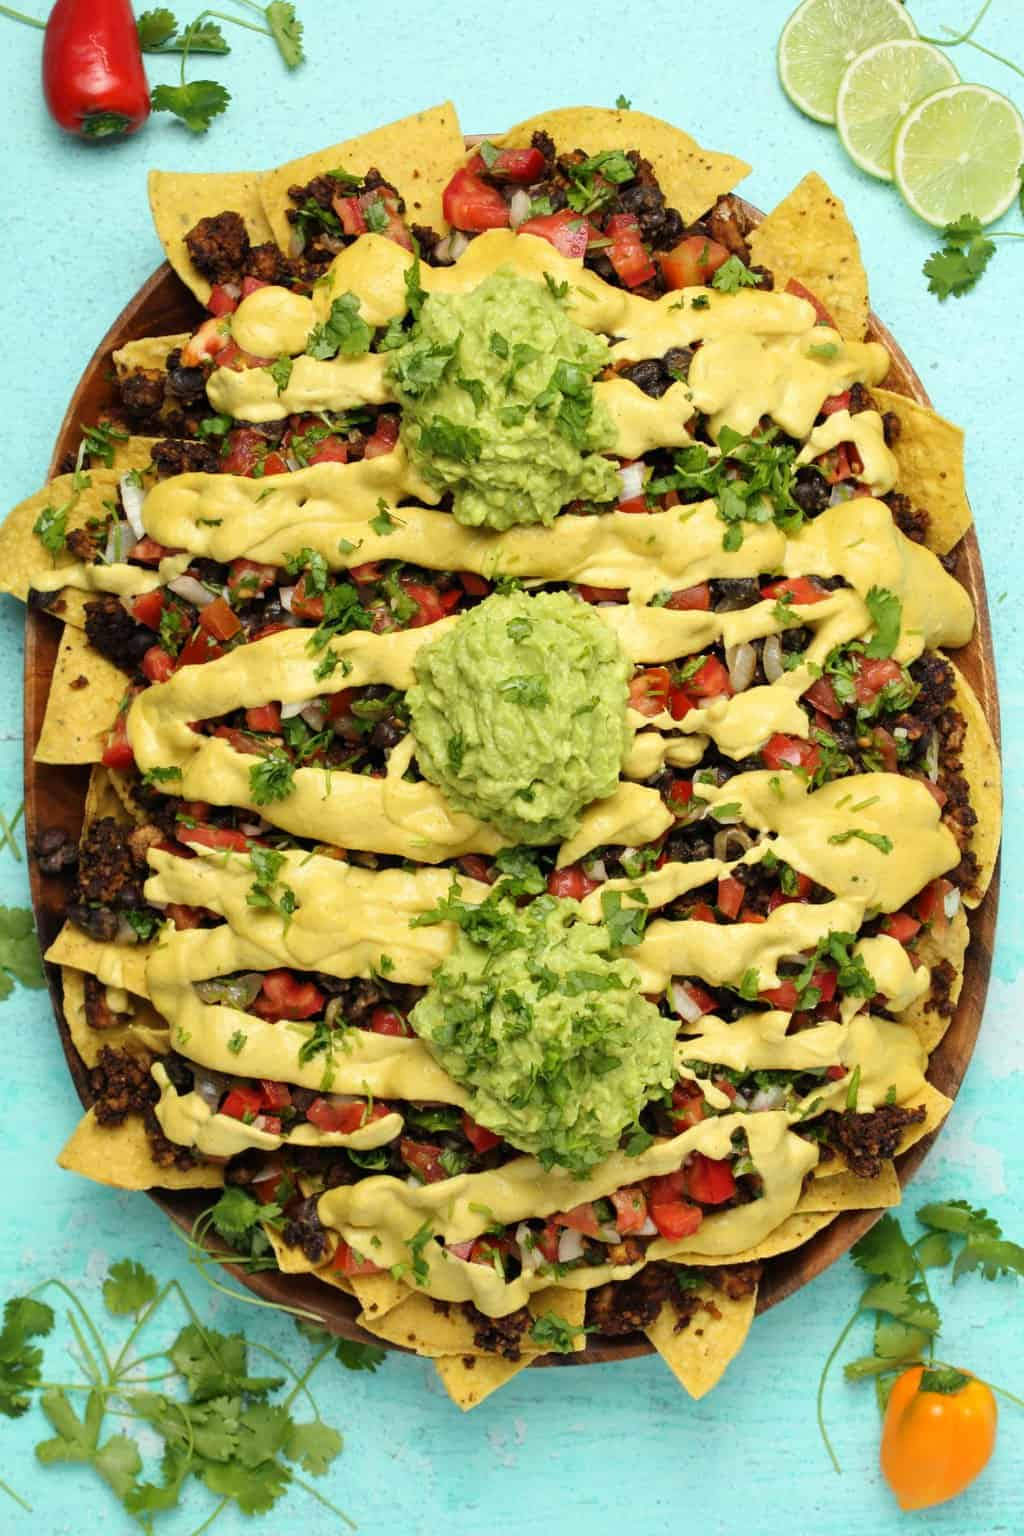 vegan nachos in a large oval platter on a teal background